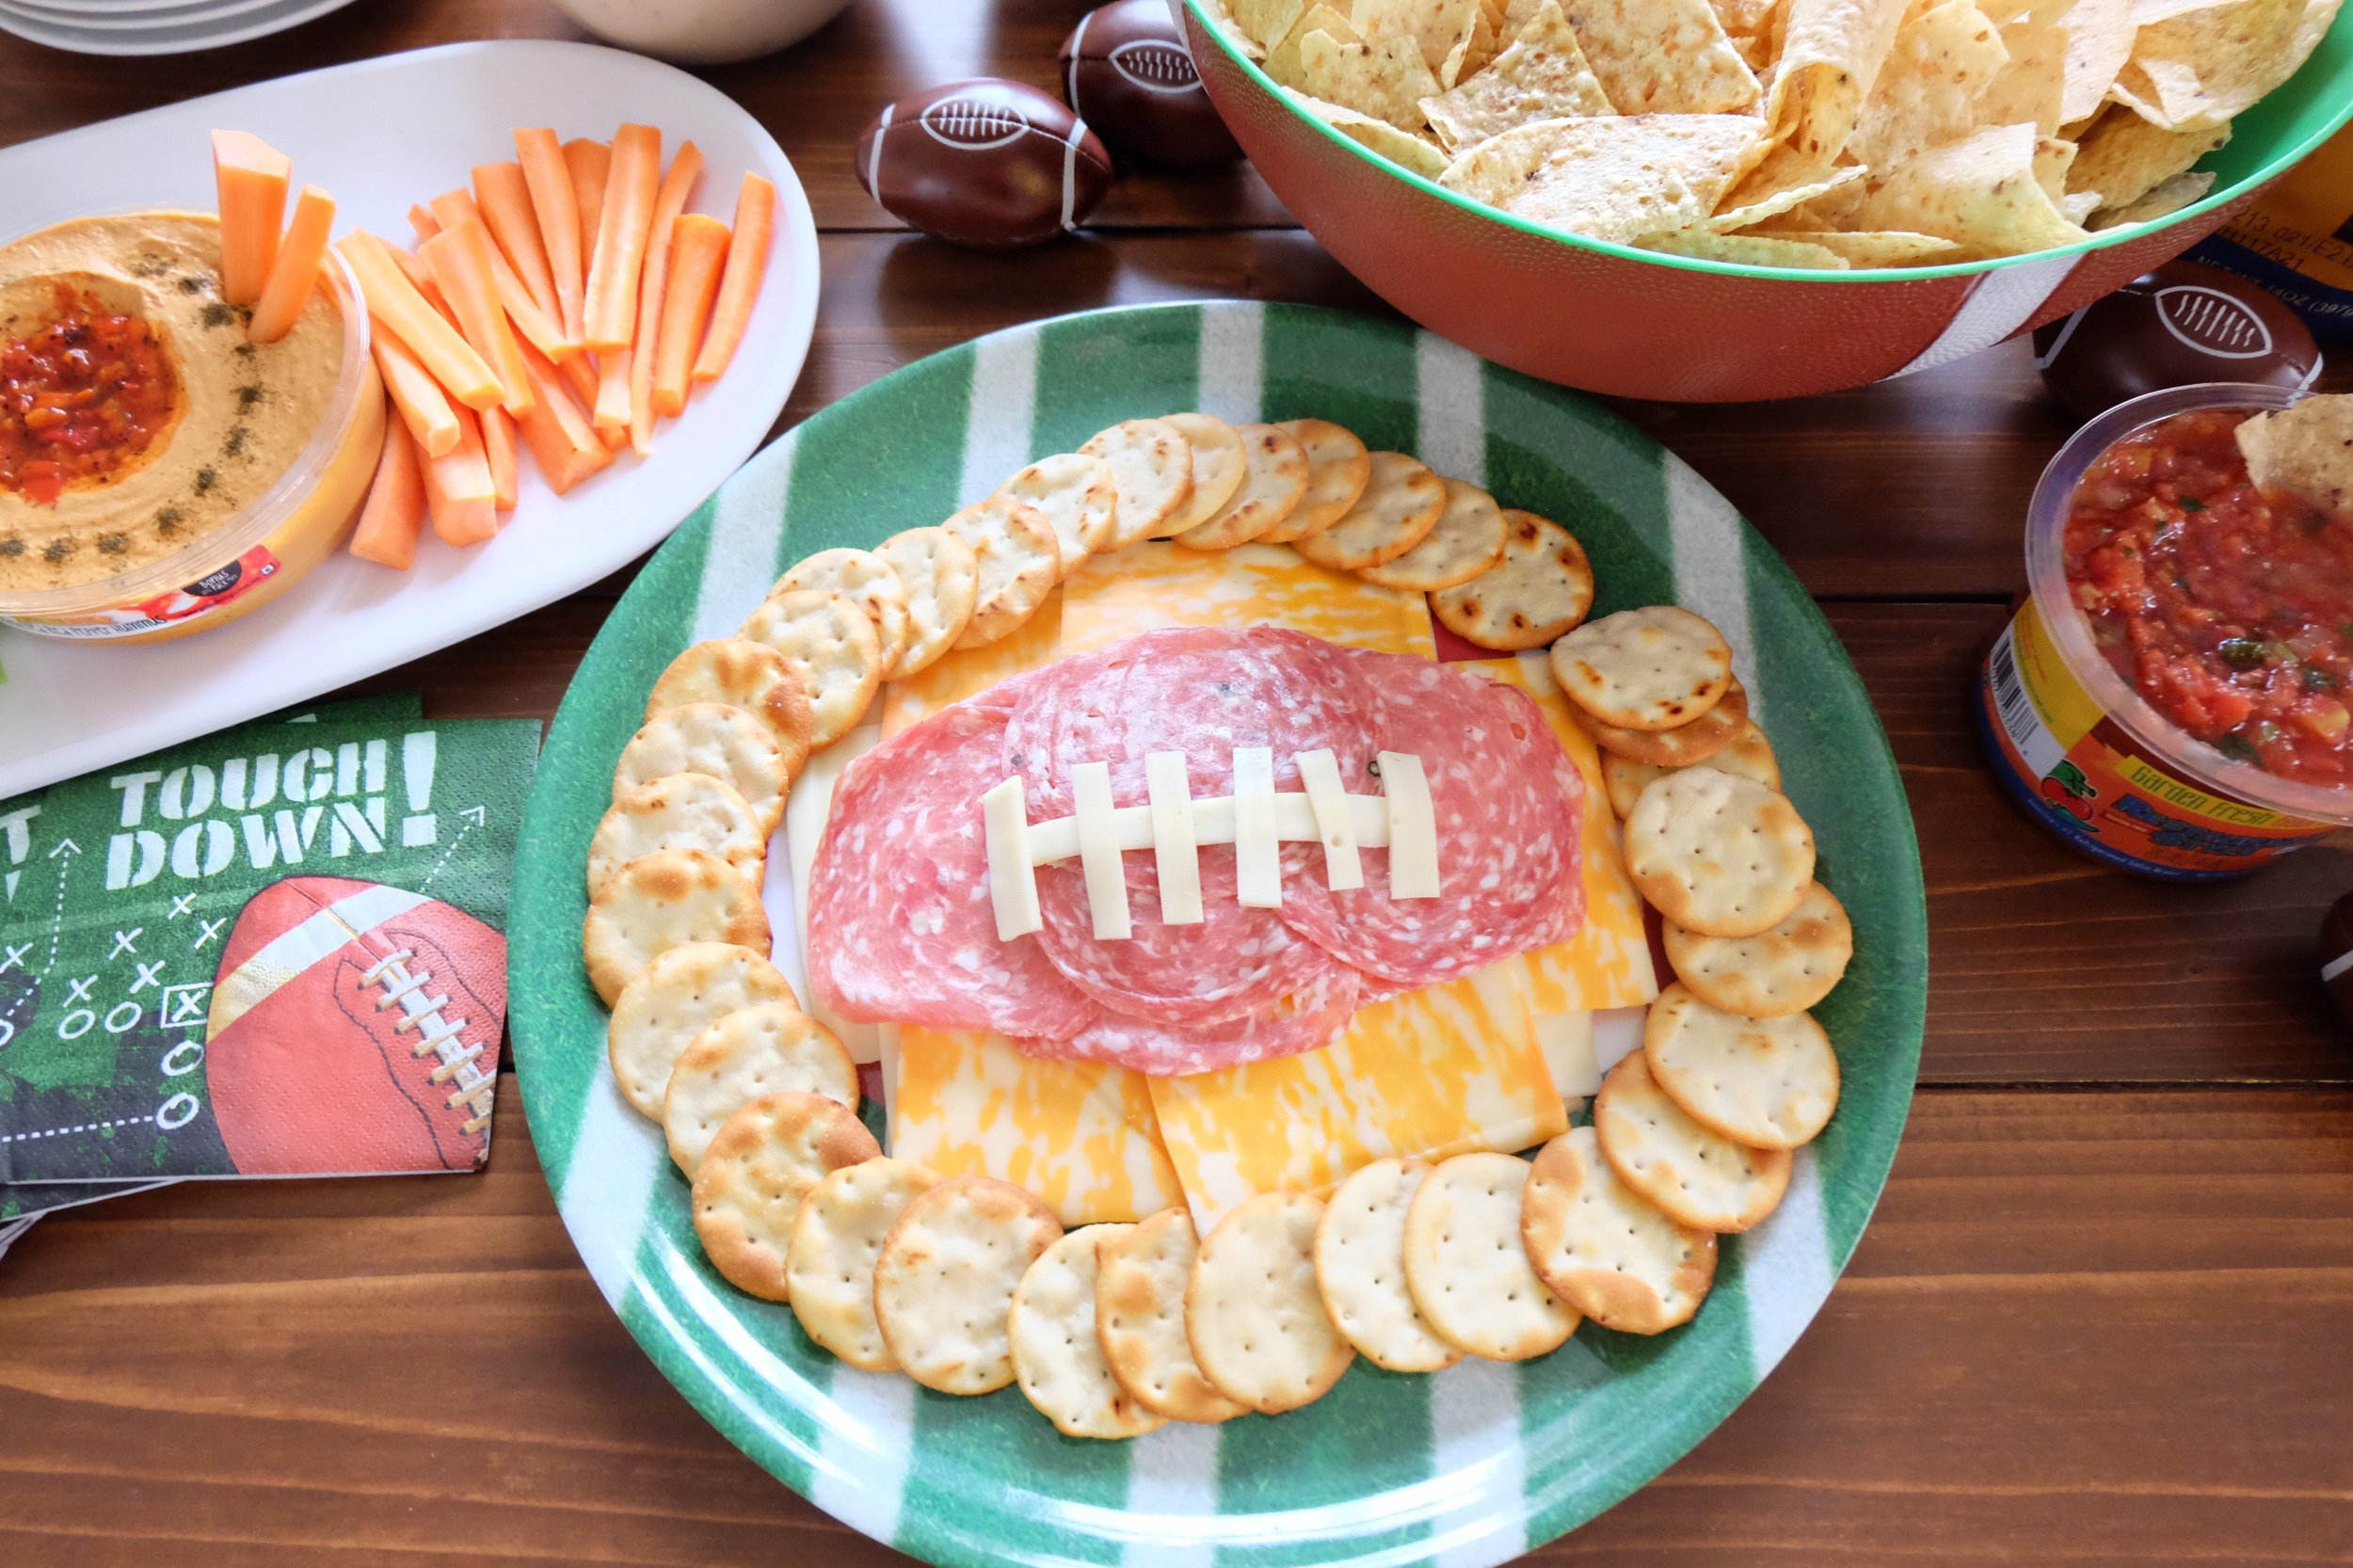 You guys, we are SO ready for the Big Game this weekend, mostly because of the FOOD and halftime show!   Here is the ultimate nacho table with a lot of trimmings! We used a lot of   Garden Fresh Gourmet   Foods.   Garden Fresh Gourmet Chips, salsas, hummus dips and paired it with our favorite cheeses, meats and veggies! One of the many reasons I love Garden Gourmet is because they are natural,  Non GMO and super fresh. We added our favorite cheese dip and taco meat with the spread!